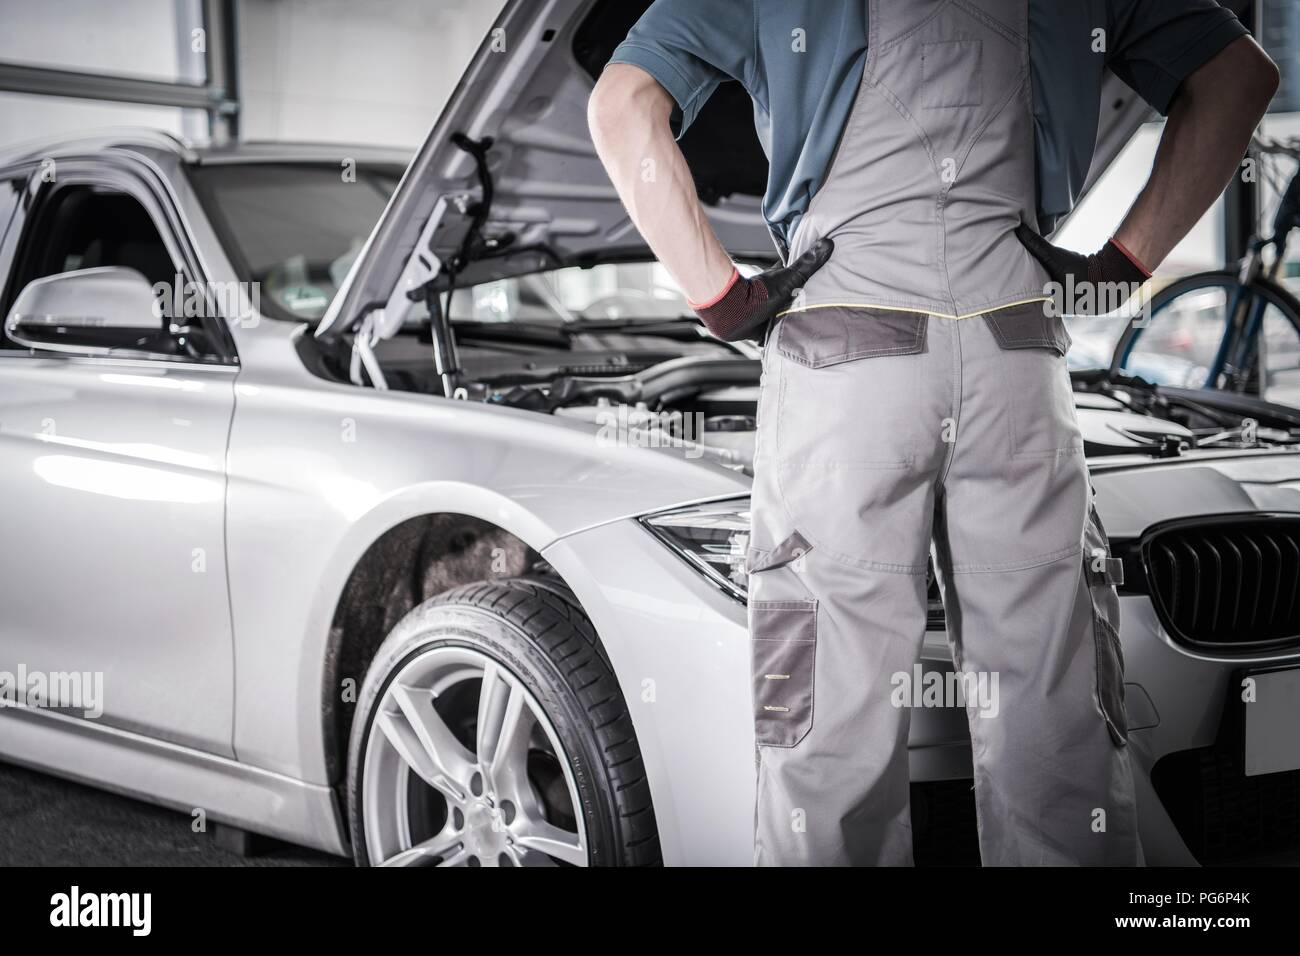 Modern Car Warranty Recall Fix. Mechanic in Front of the Vehicle in the Authorized Service Center. - Stock Image